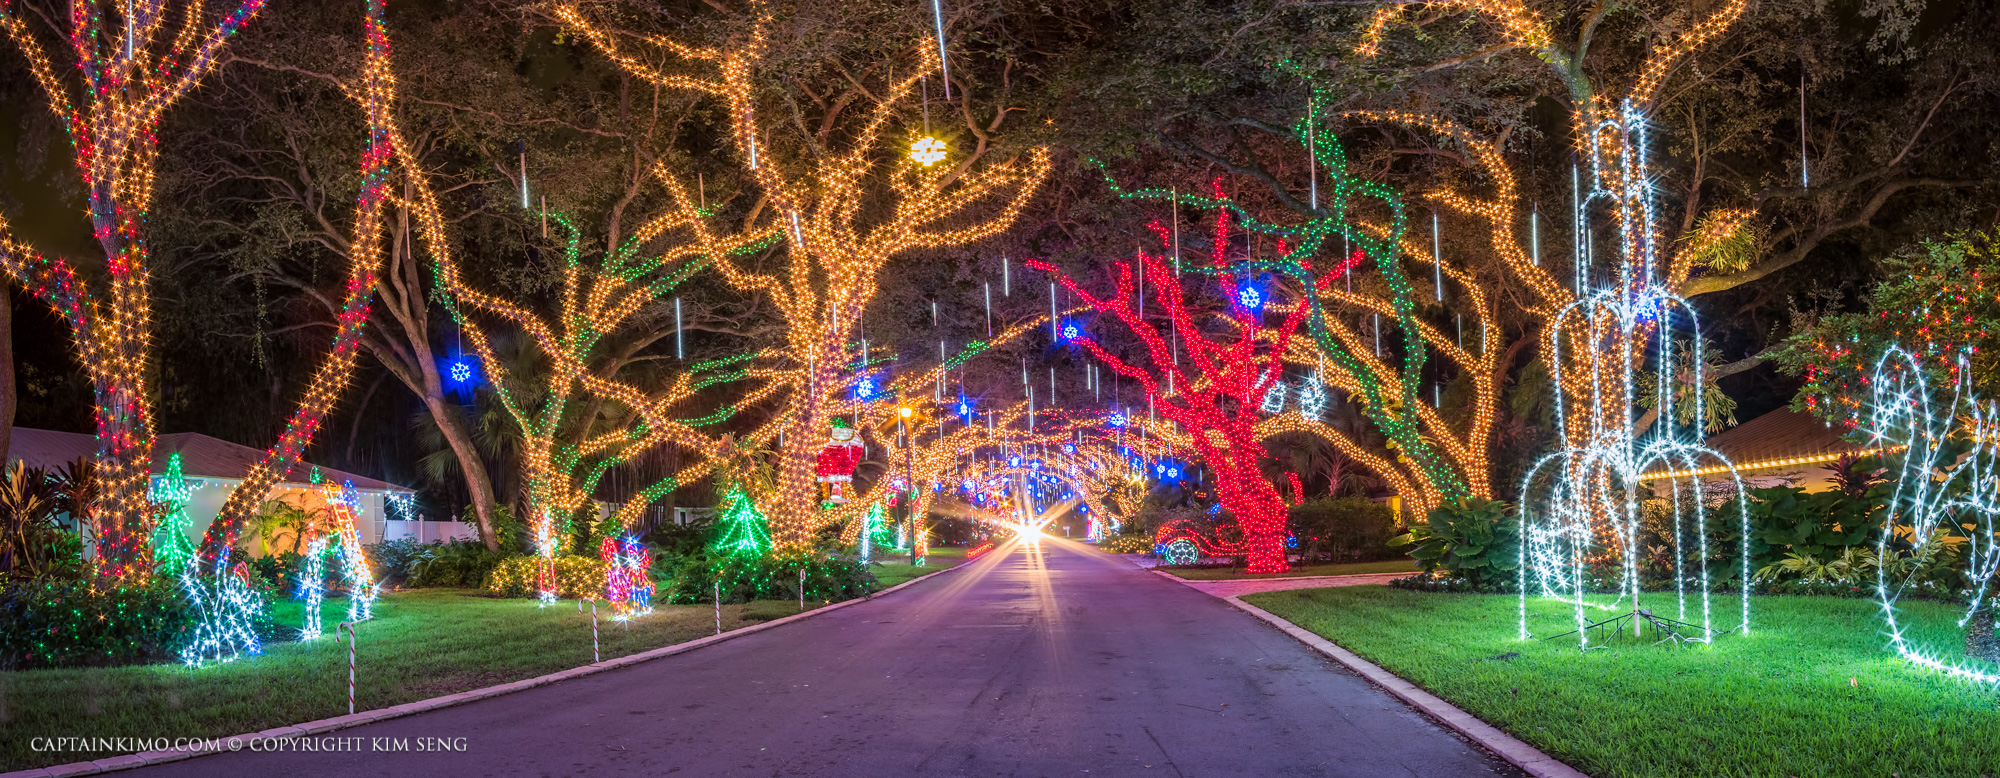 snug harbor drive christmas lights car headlights down street